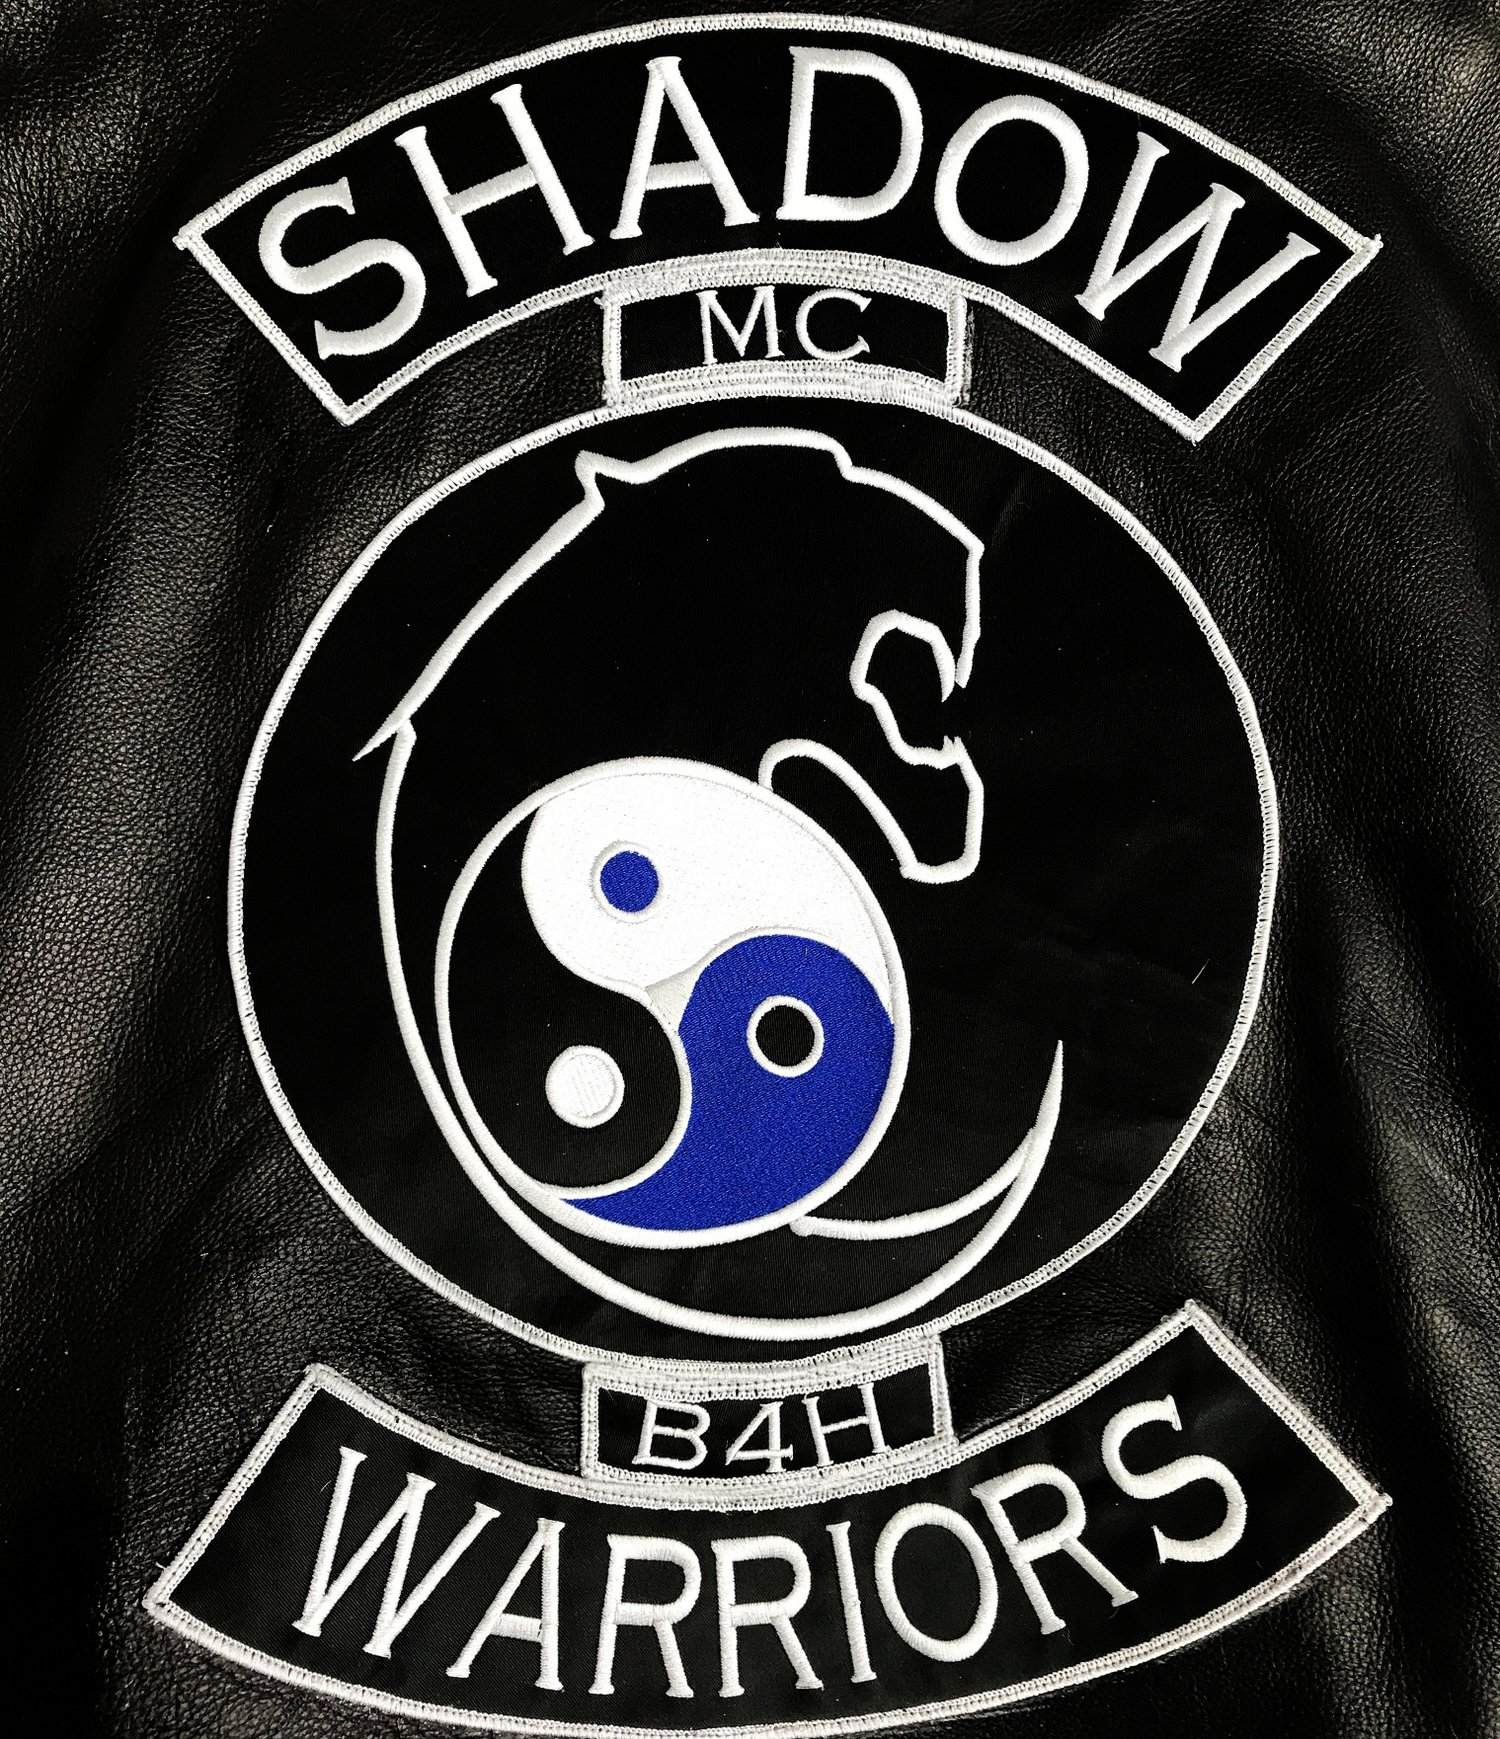 Shadow Warriors Motorcycle Club